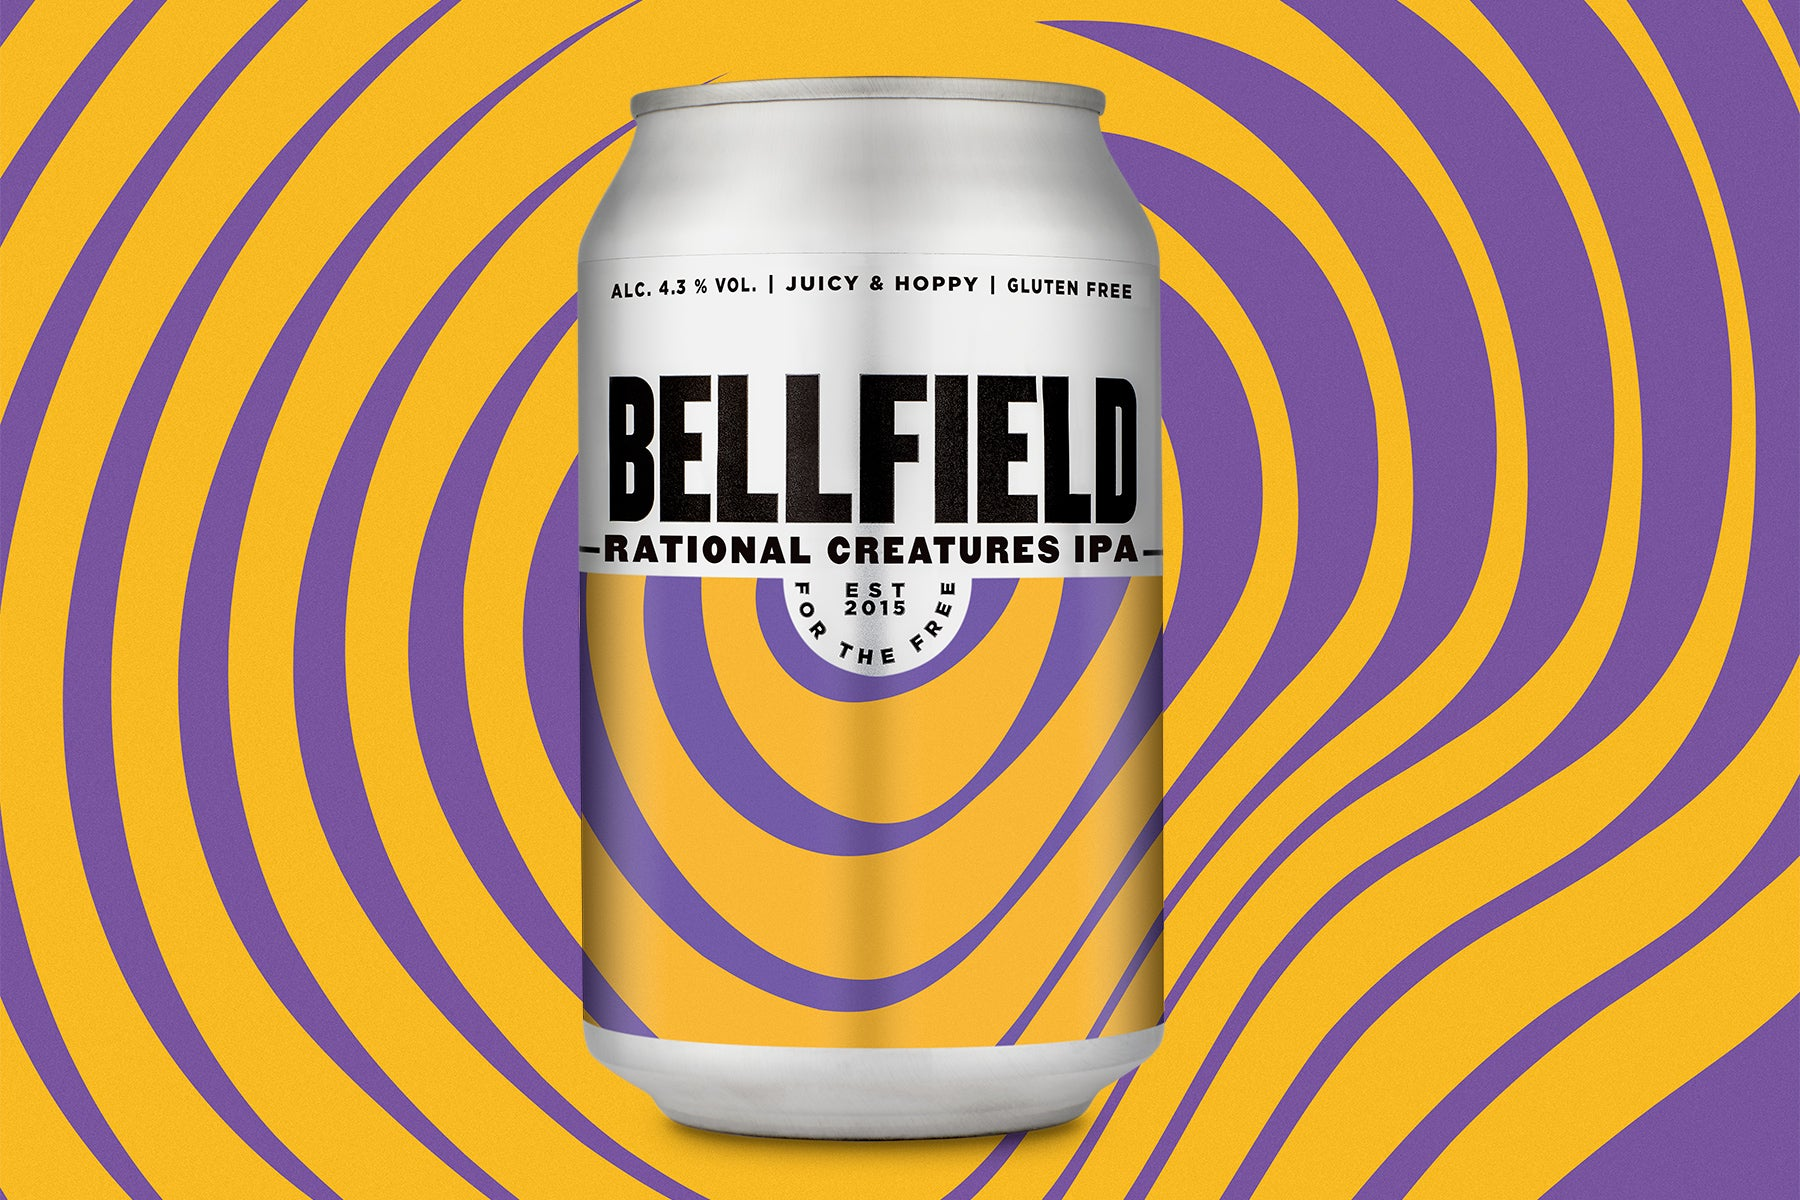 Introducing Rational Creatures IPA